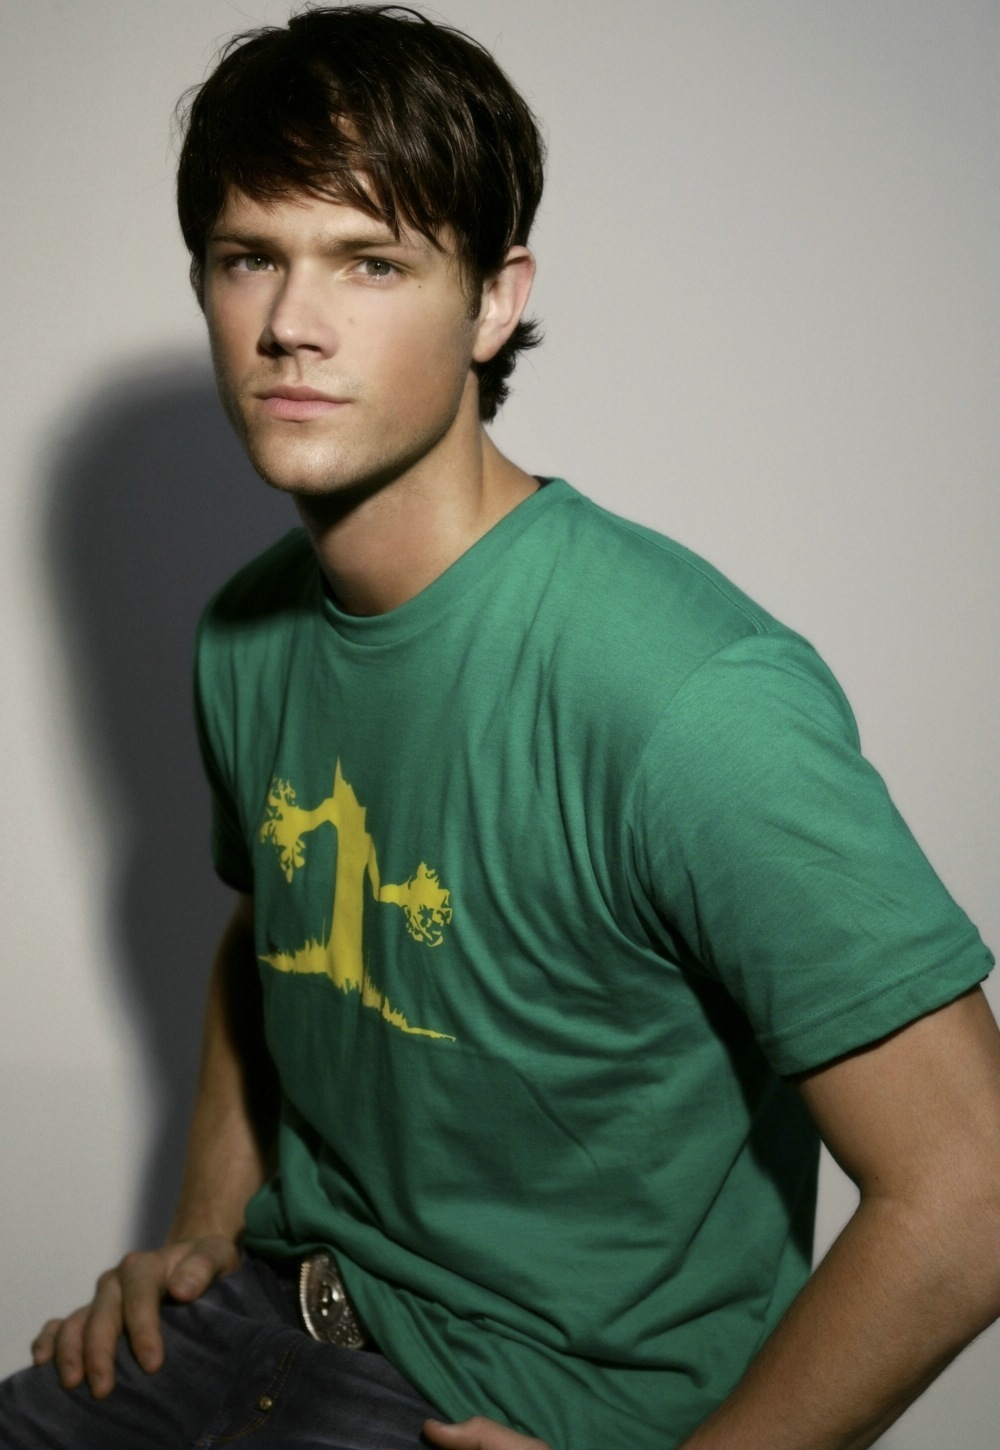 Jared Padalecki Supernatural Photo 6591463 Fanpop